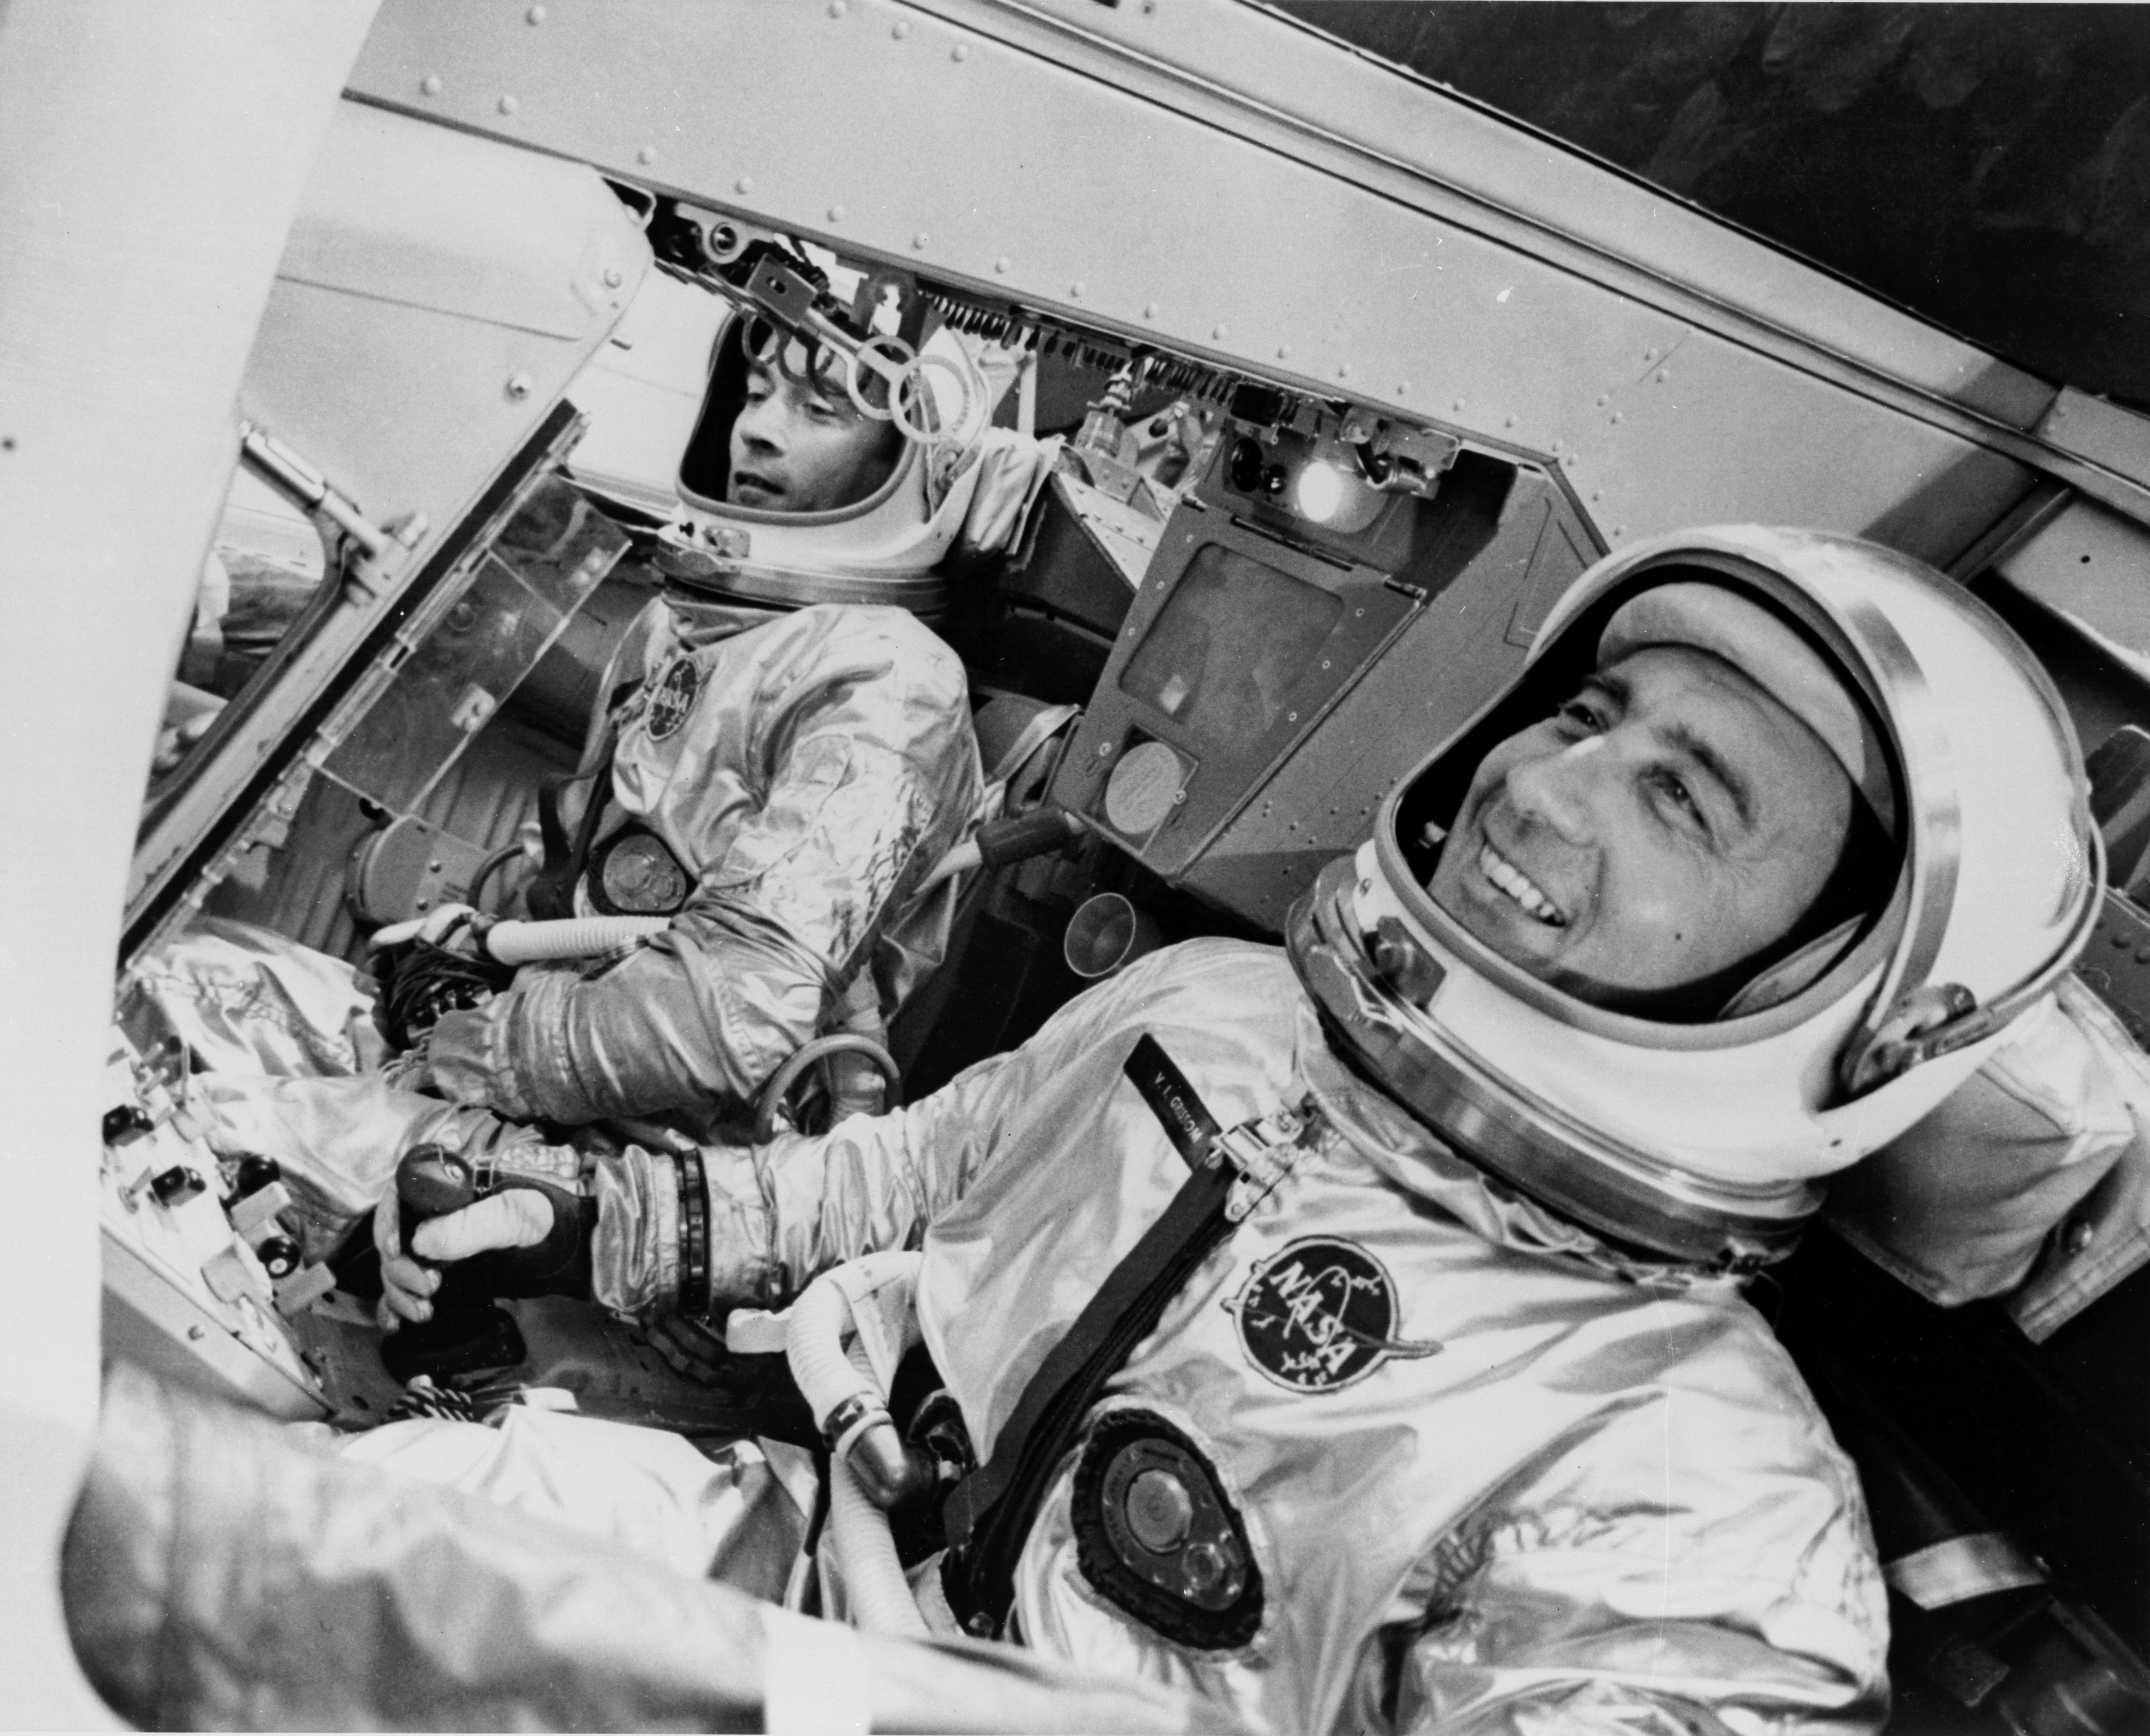 John Young pretending he didn't just stink up the whole cockpit on the left while Gus Grissom pretending he's never heard of corned beef.